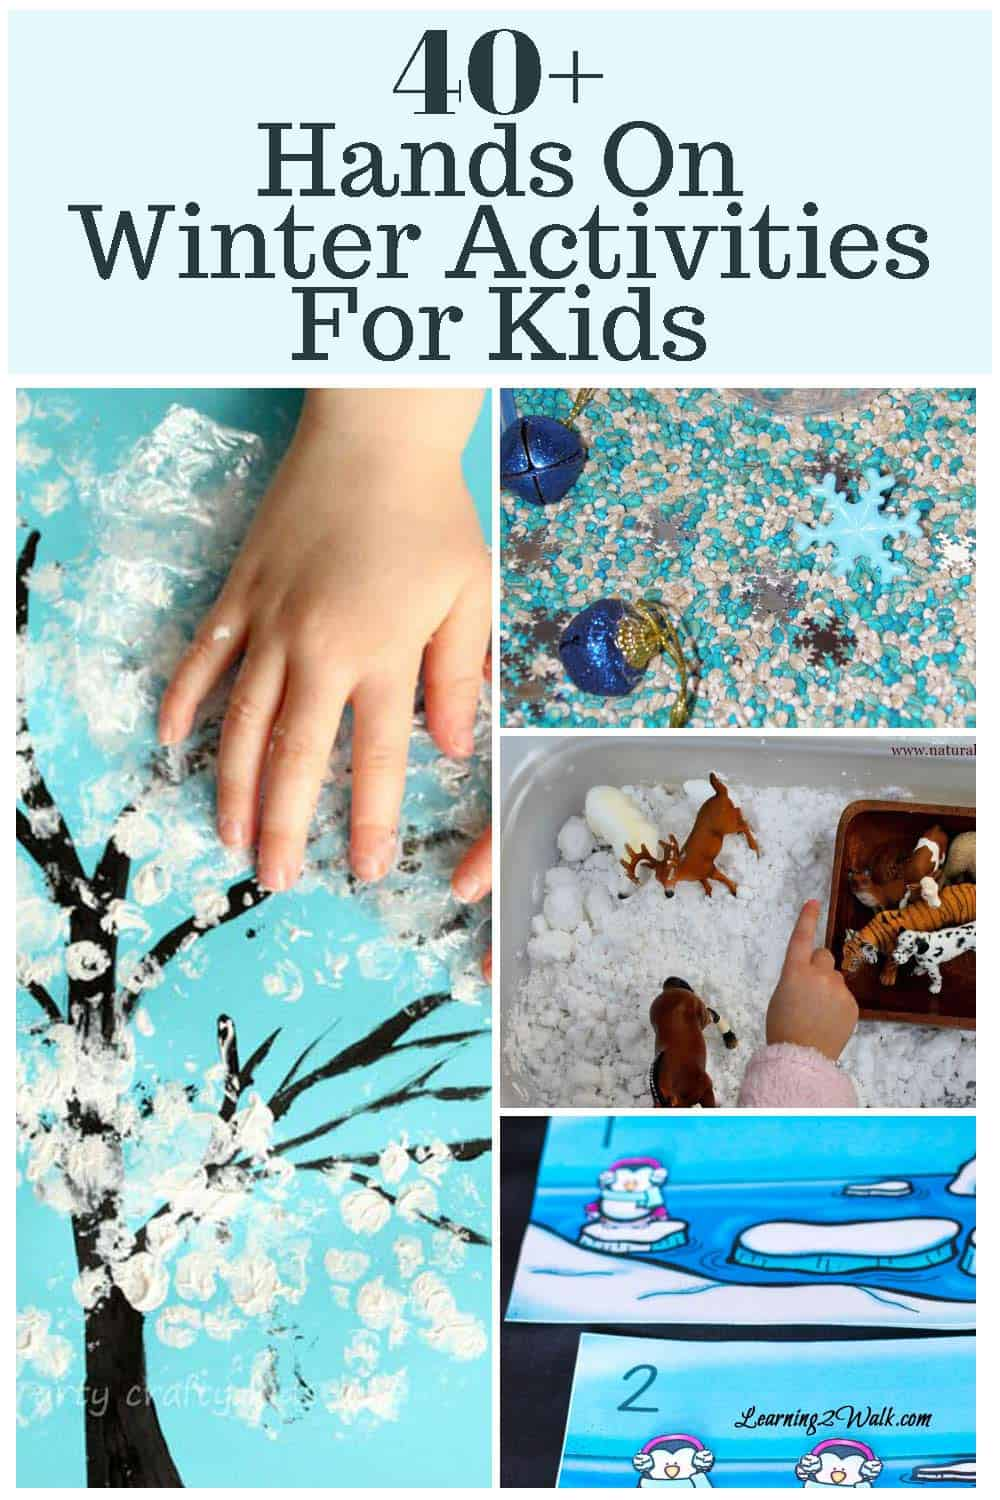 Winter brings with it great opportunities to embrace the cold! If you are looking for a few winter activities for kids that are hands on, try a sensory bin or some hands-on math!